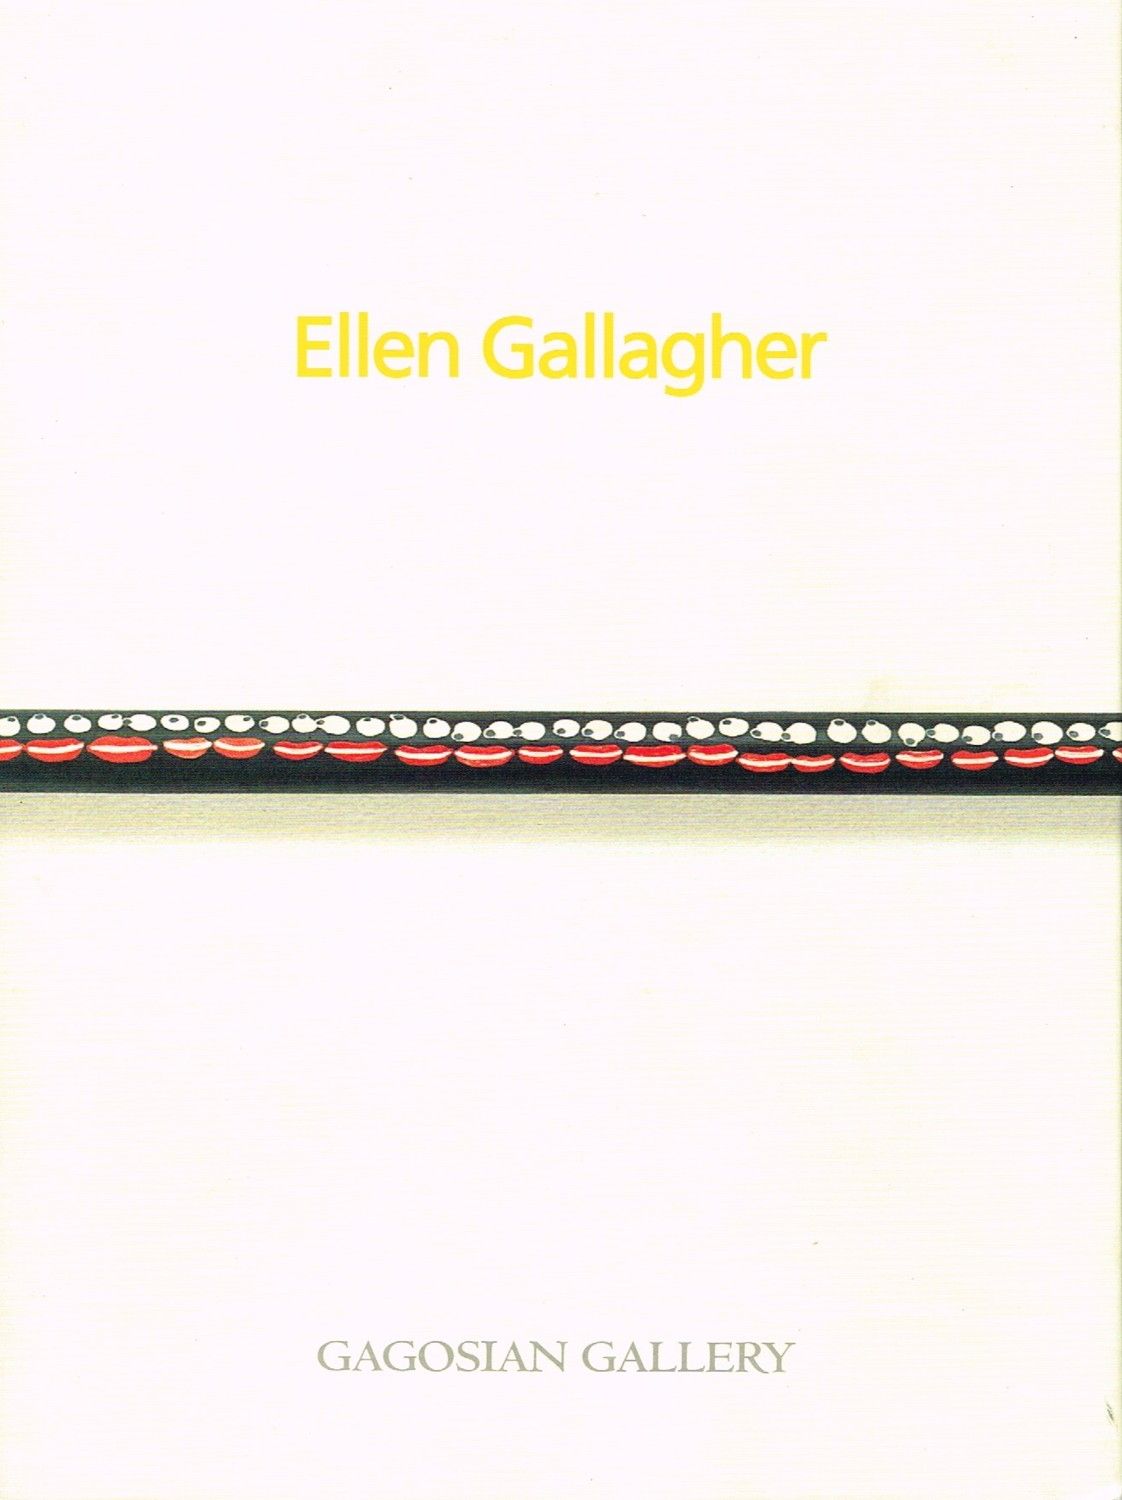 (GALLAGHER, ELLEN). GALLAGHER, ELLEN, GREG TATE & COLETTE CHIMURENGA - ELLEN GALLAGHER